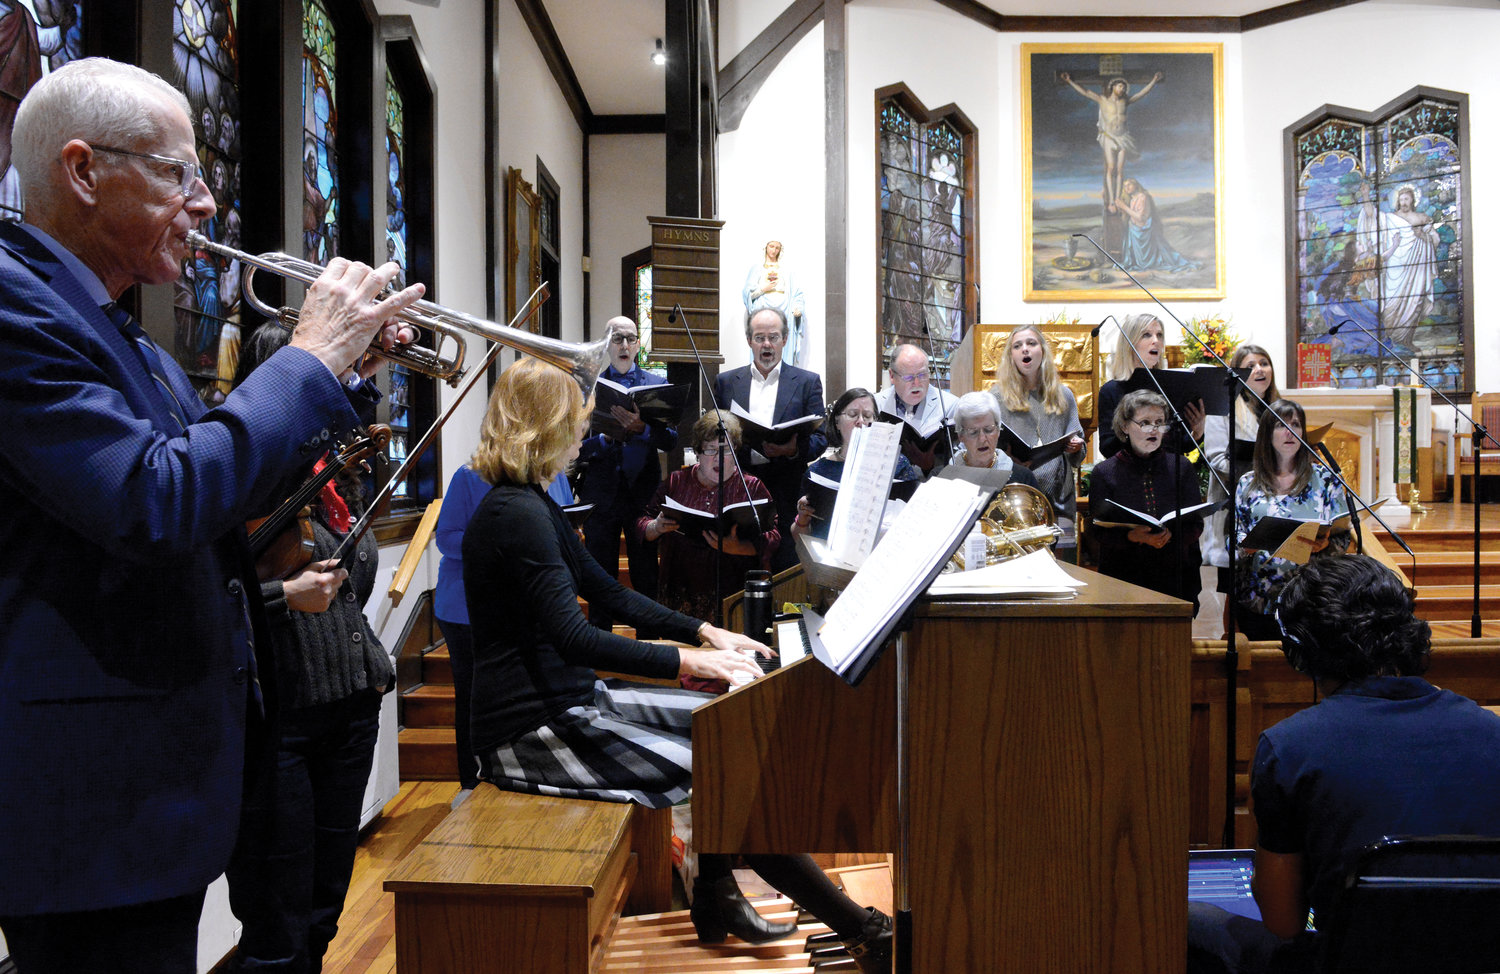 Anne Holland, parish director of music, plays the organ. Her husband, Jim Hughes, on the trumpet, and members of the parish choir join her.